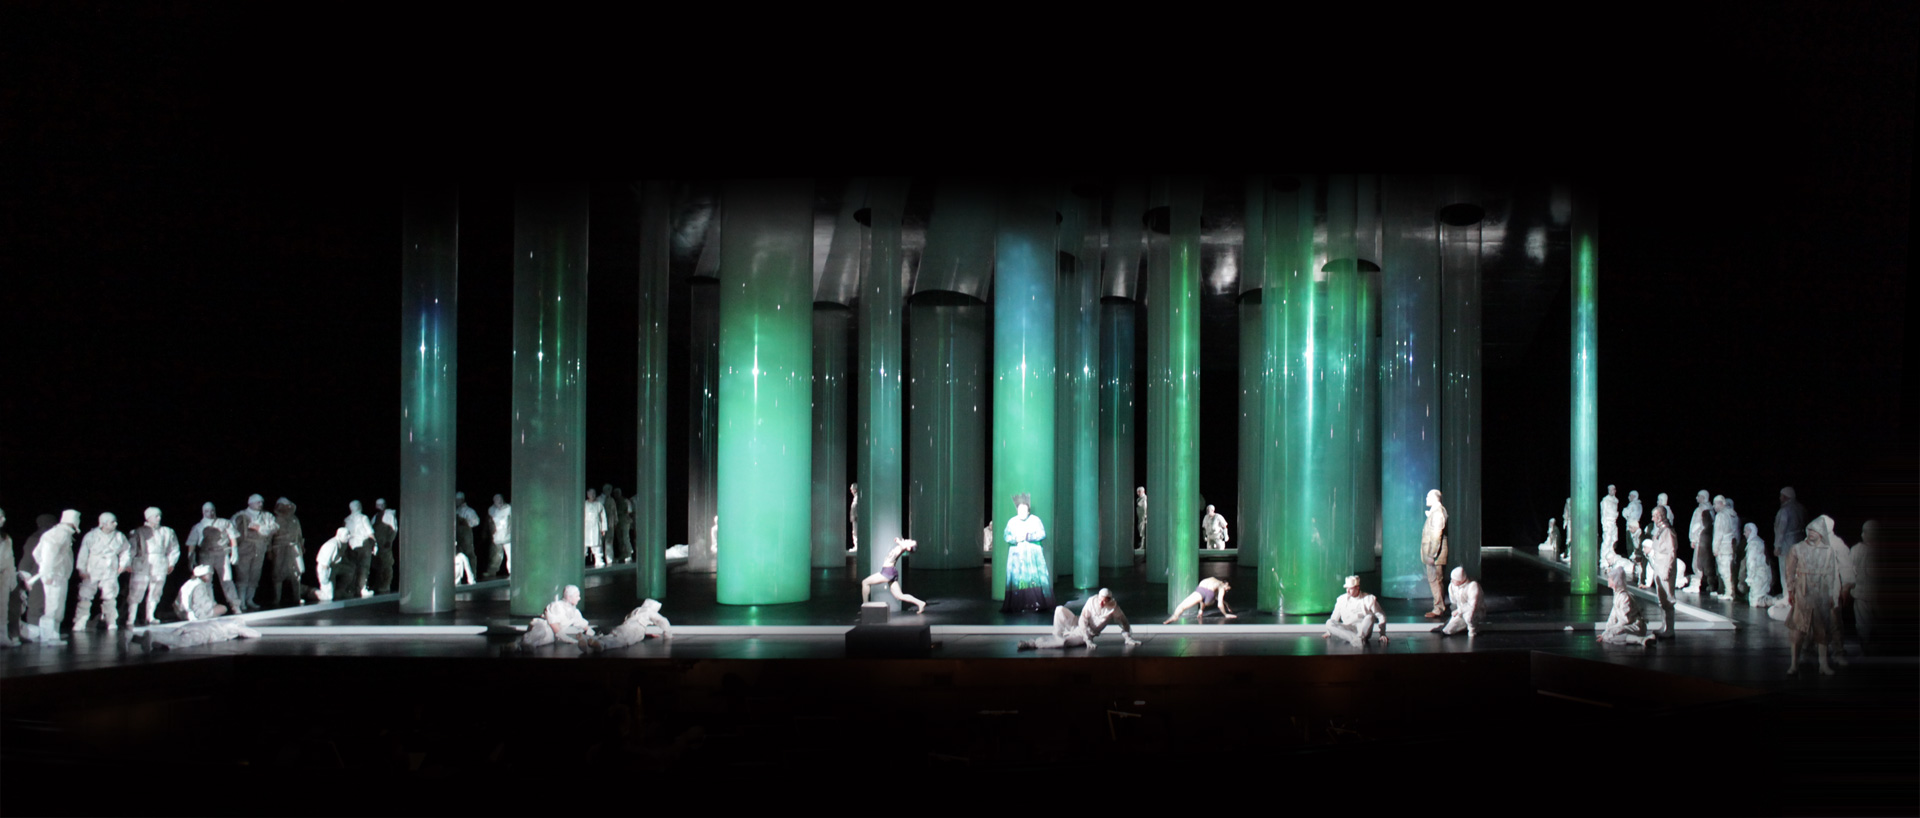 parsifal_IMG_1429_e_cropped.jpg